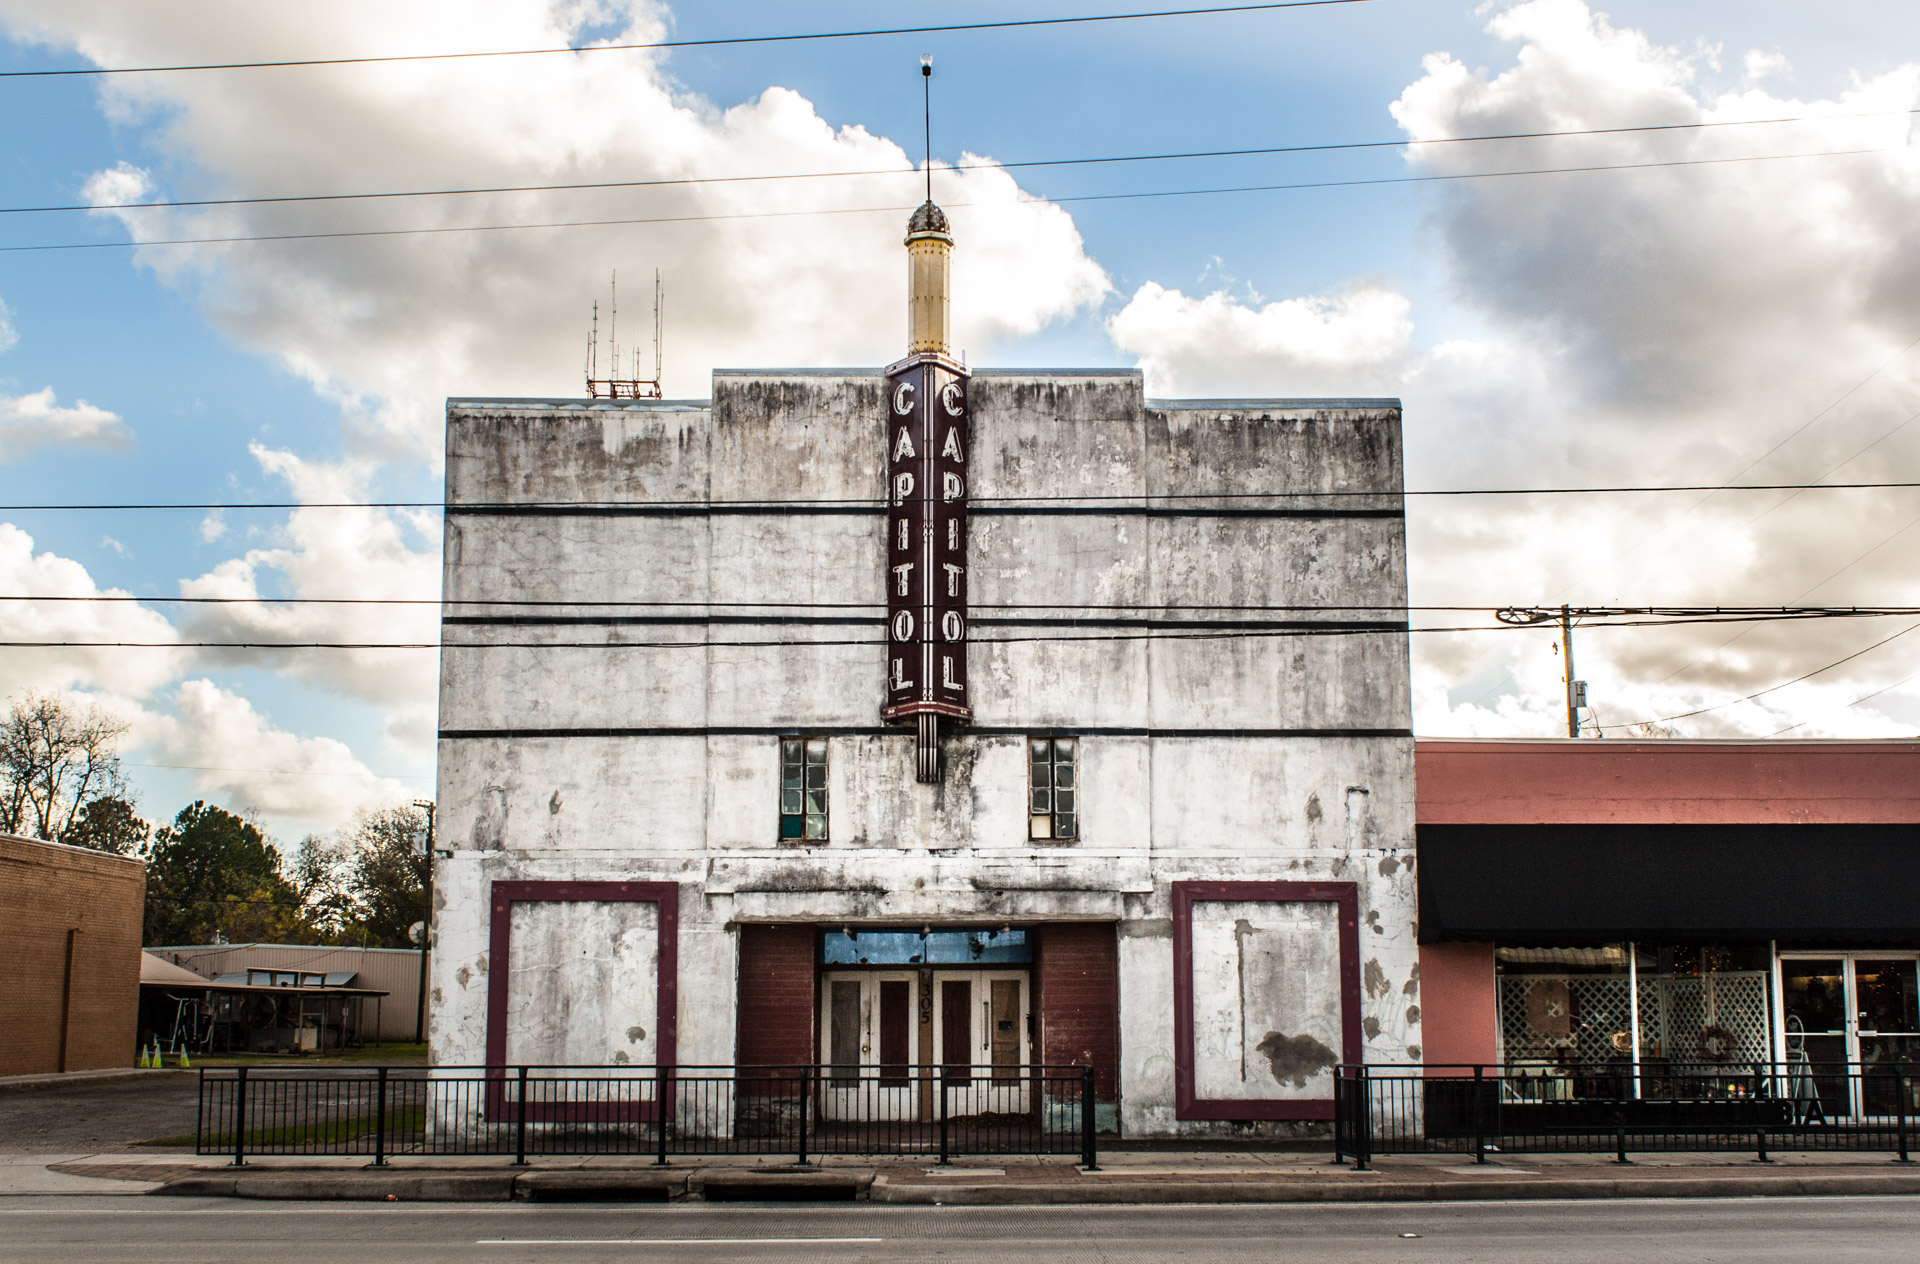 West Columbia, Texas - The Capitol Theater (front far)